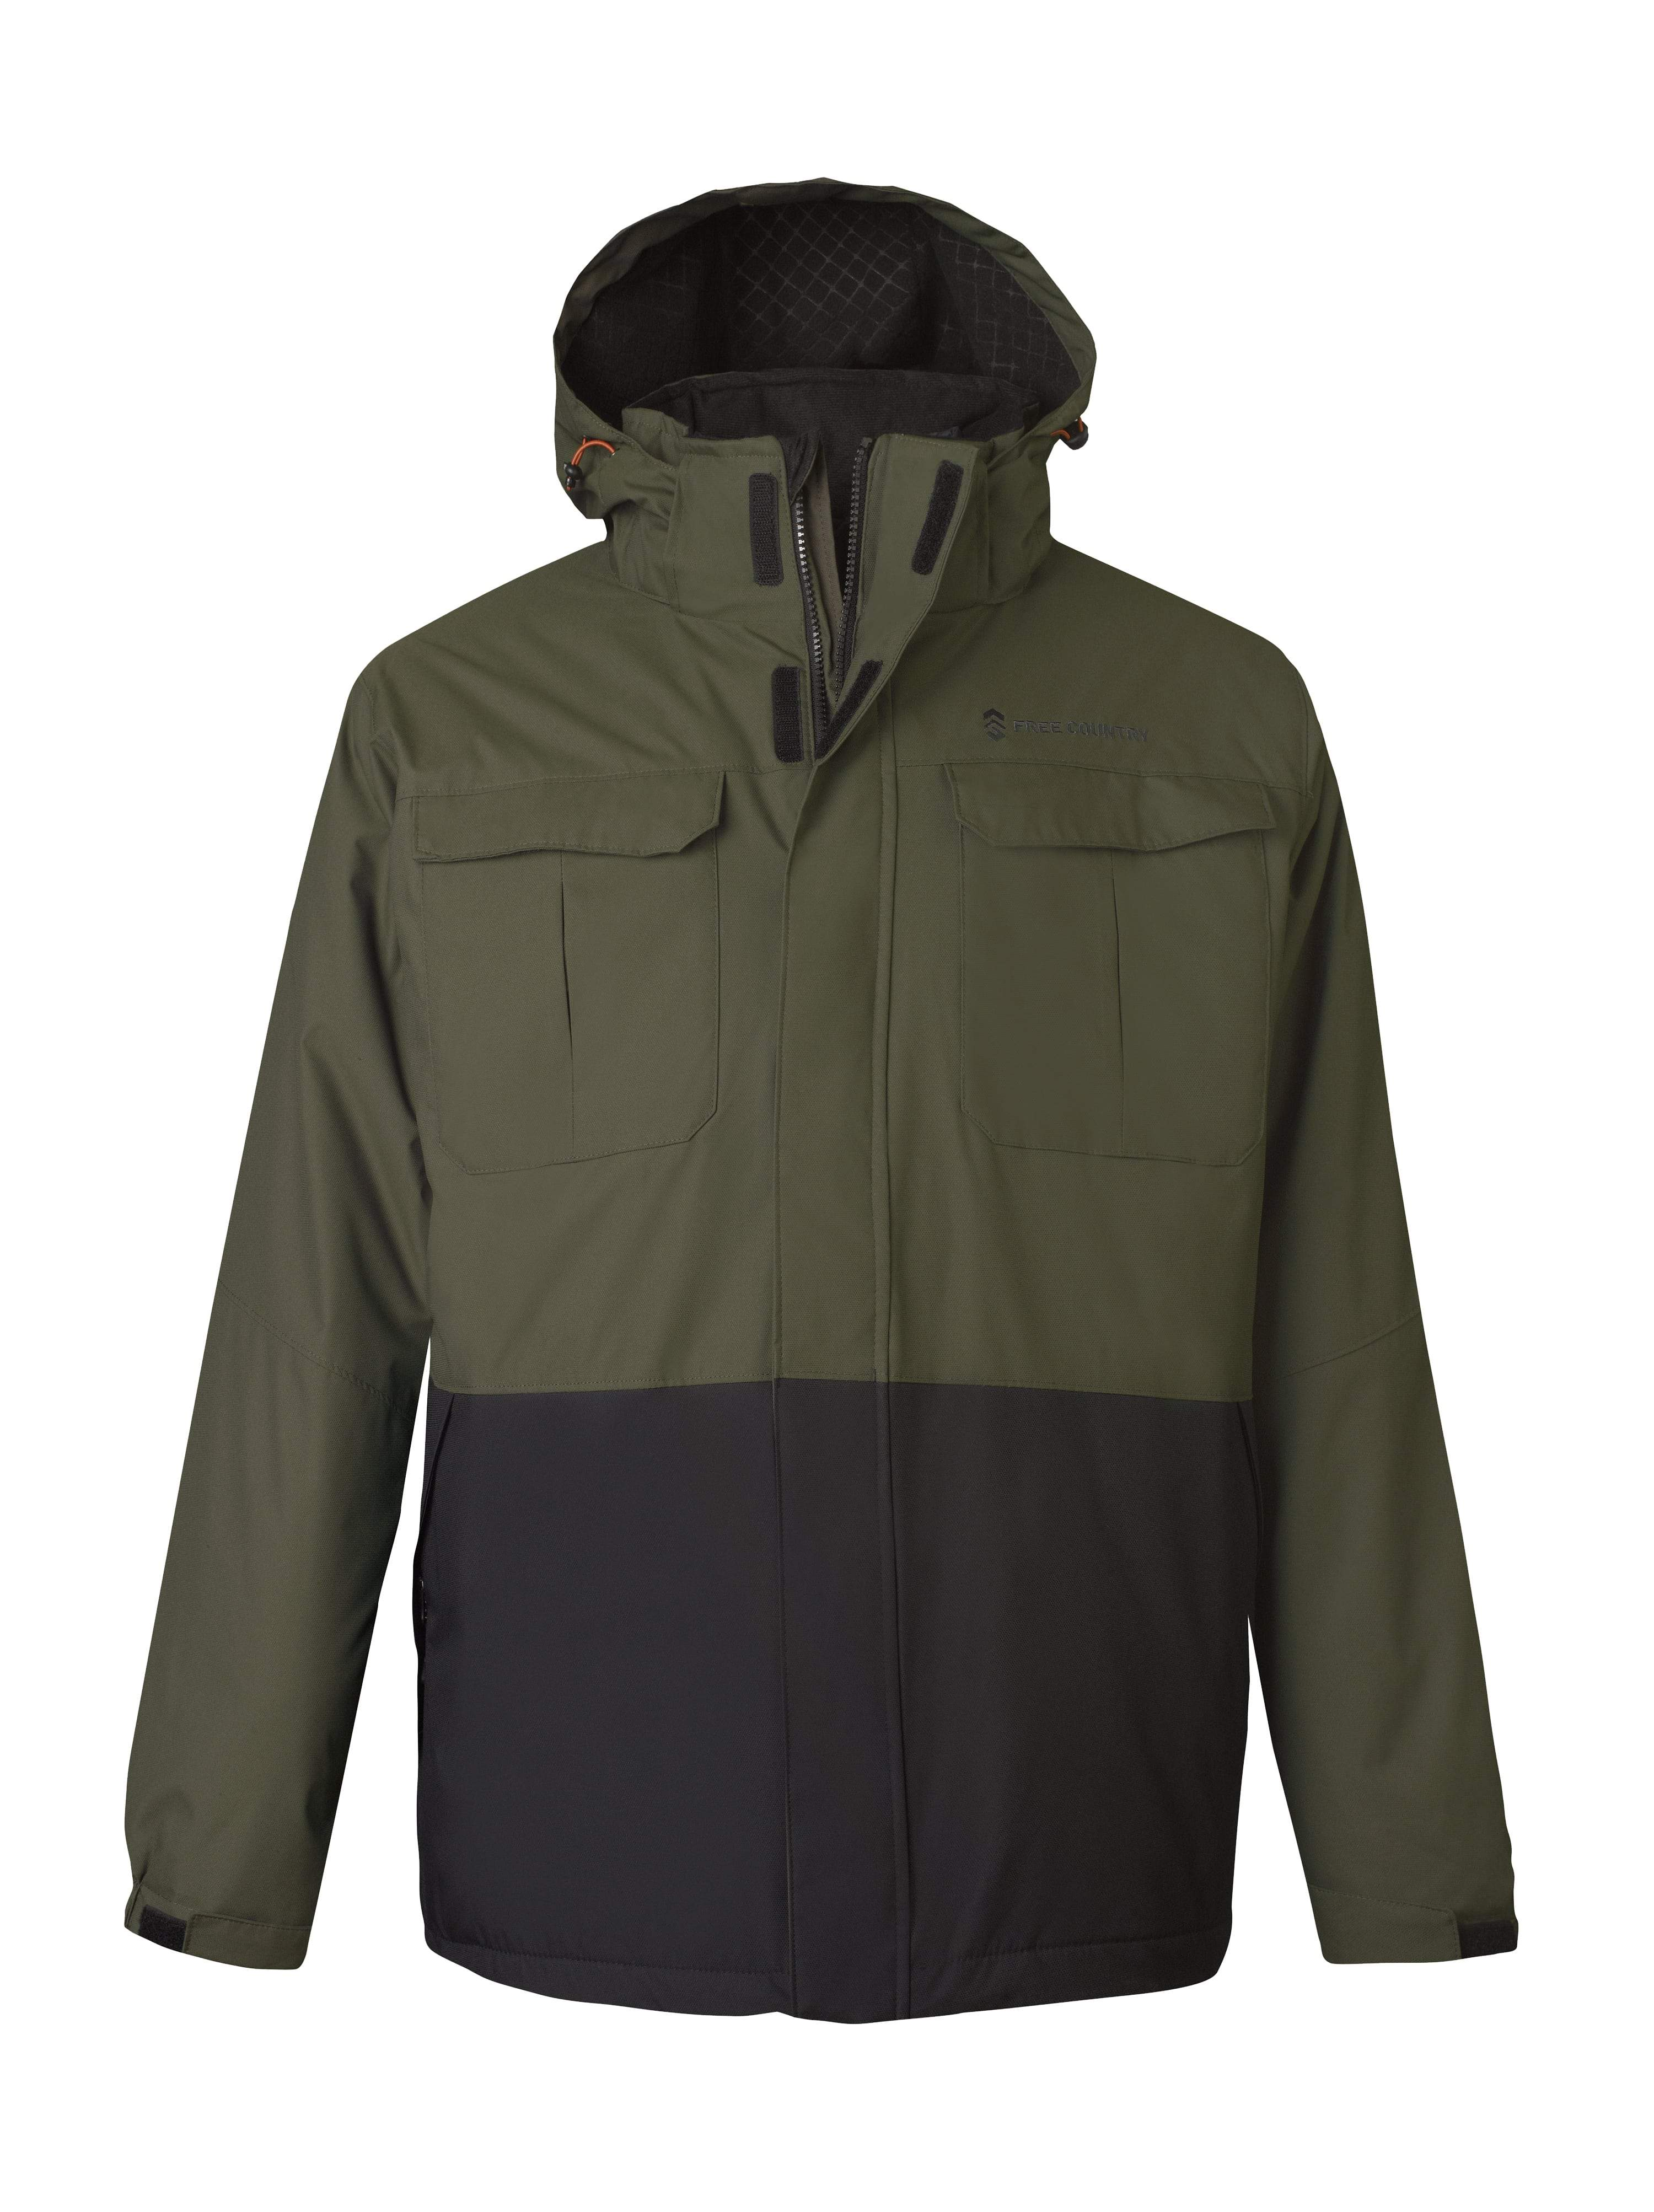 Free Country Men's Ascent 3-in-1 Systems Jacket